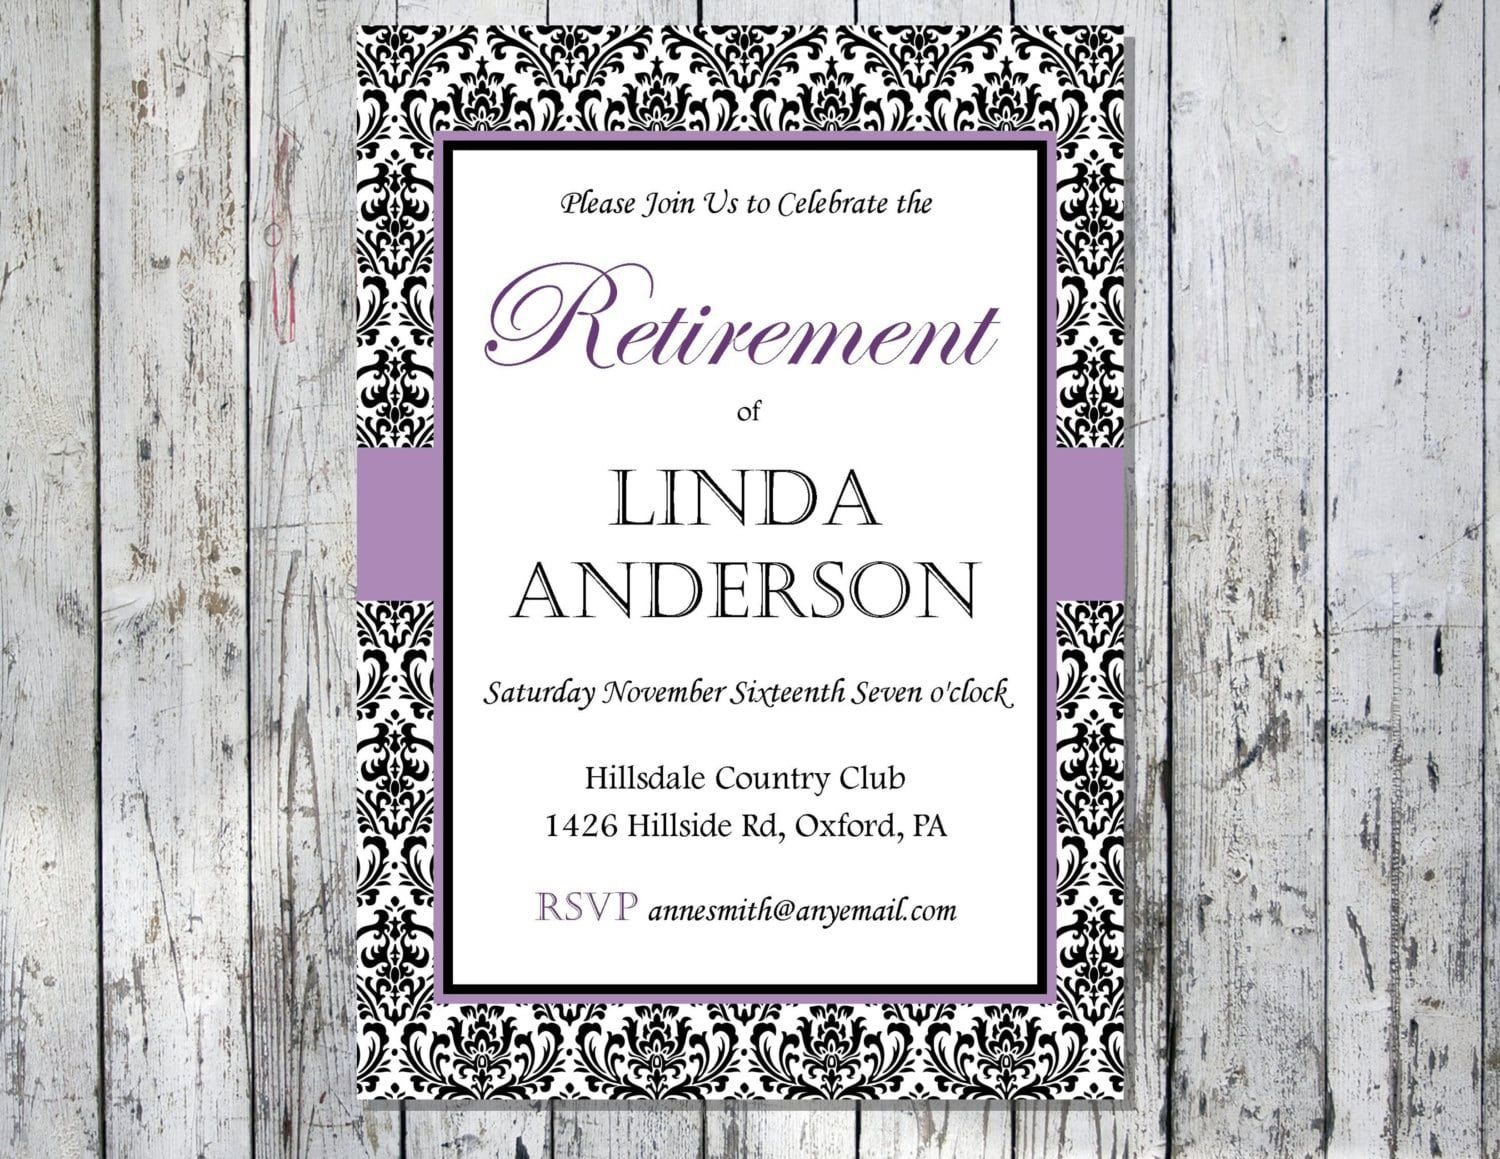 008 Unusual Retirement Party Invitation Template Free Printable High Def Full